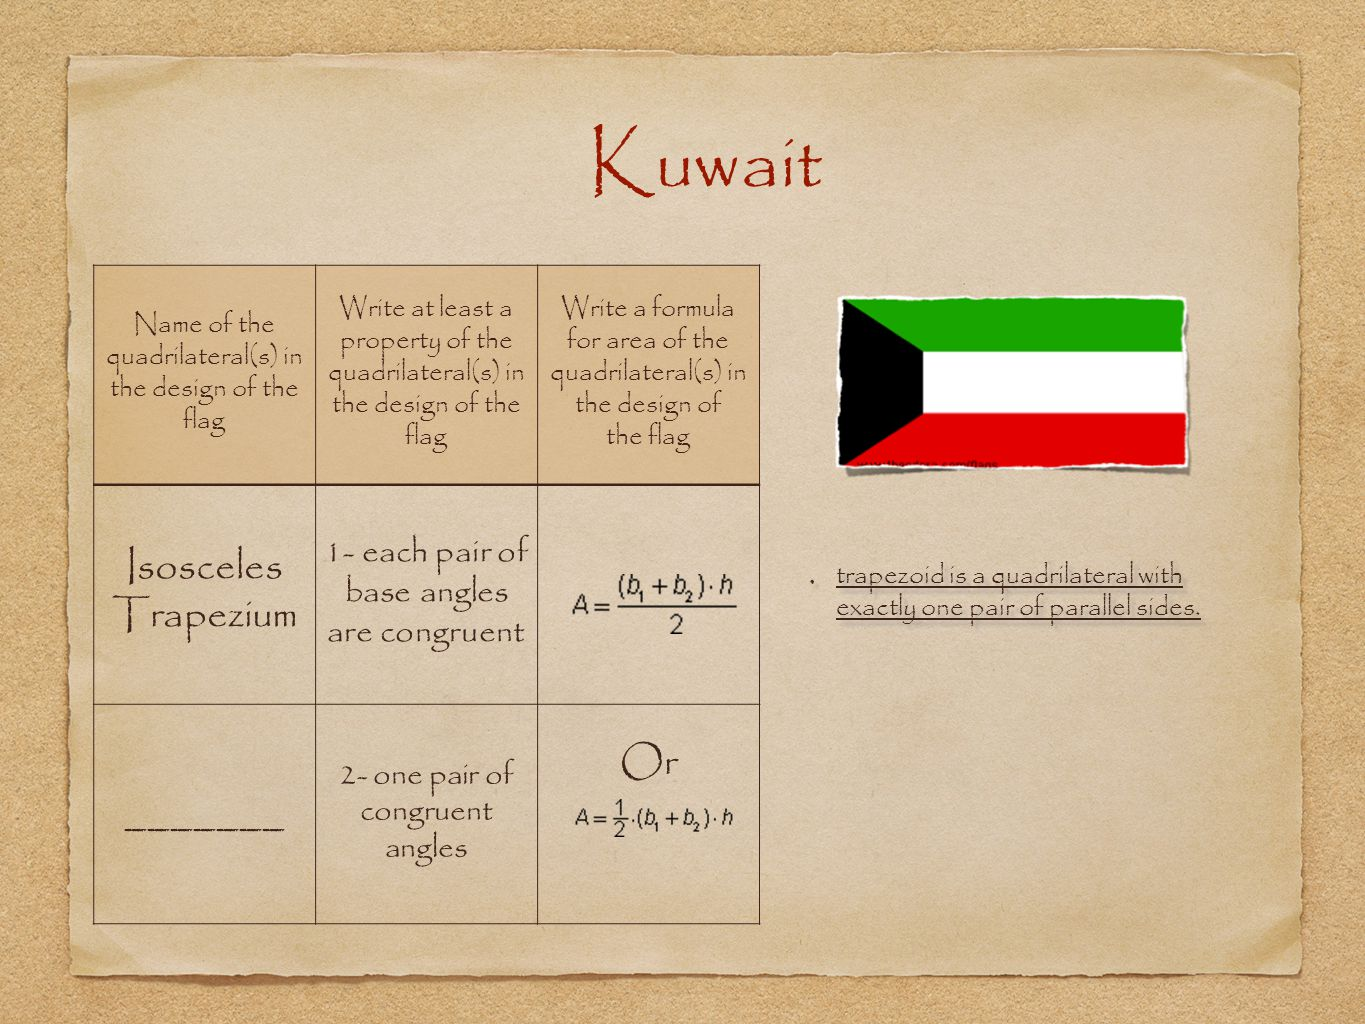 Kuwait Name of the quadrilateral(s) in the design of the flag Write at least a property of the quadrilateral(s) in the design of the flag Write a form